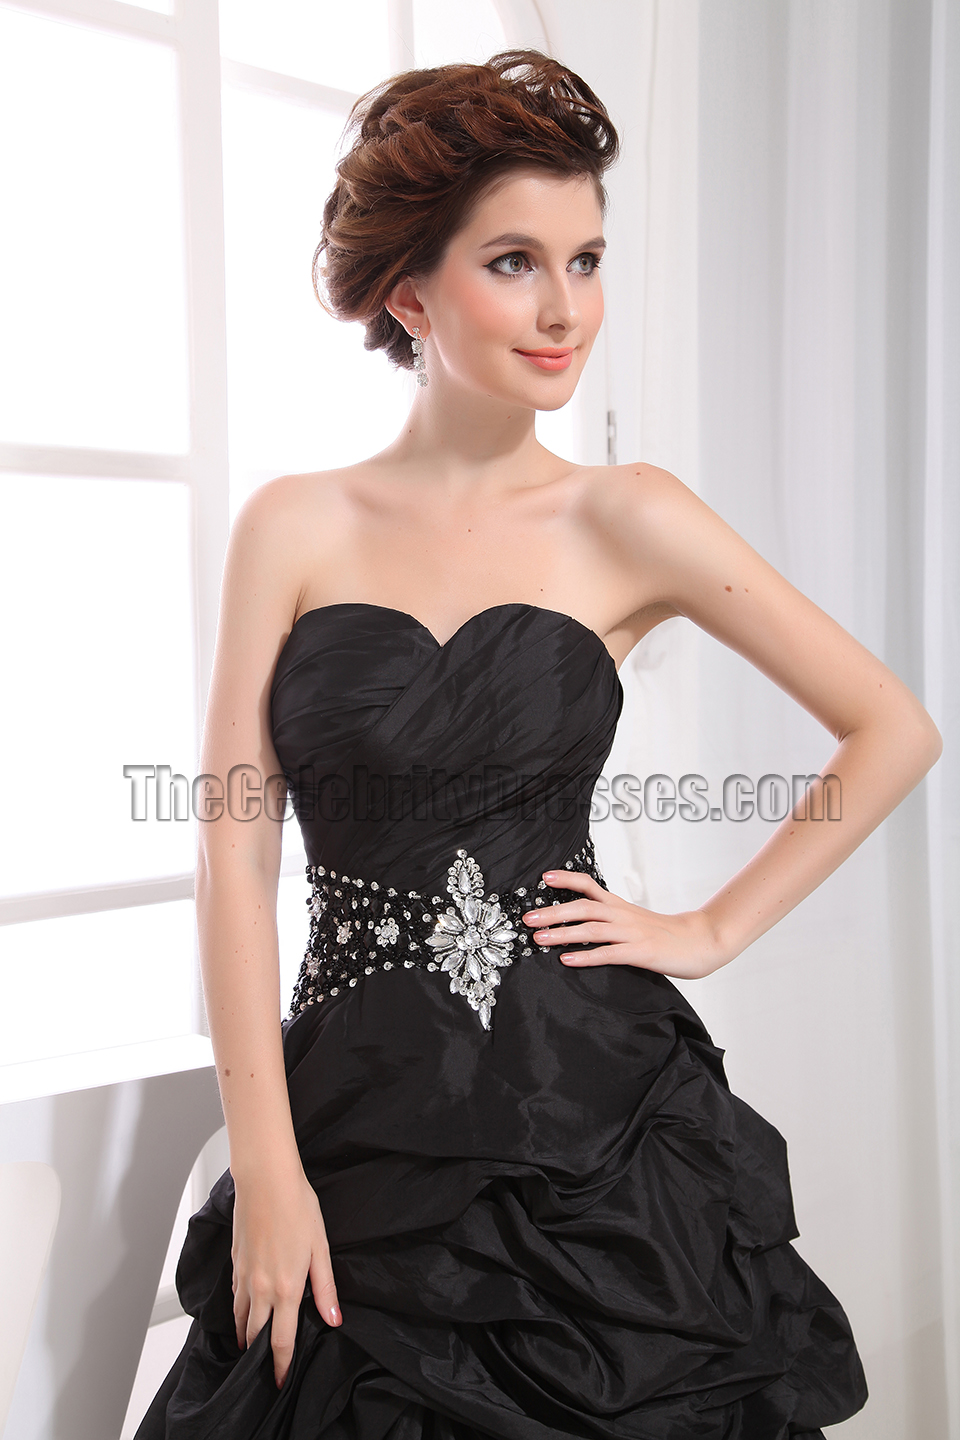 Black Strapless High Low Prom Dress Evening Party Dresses ...